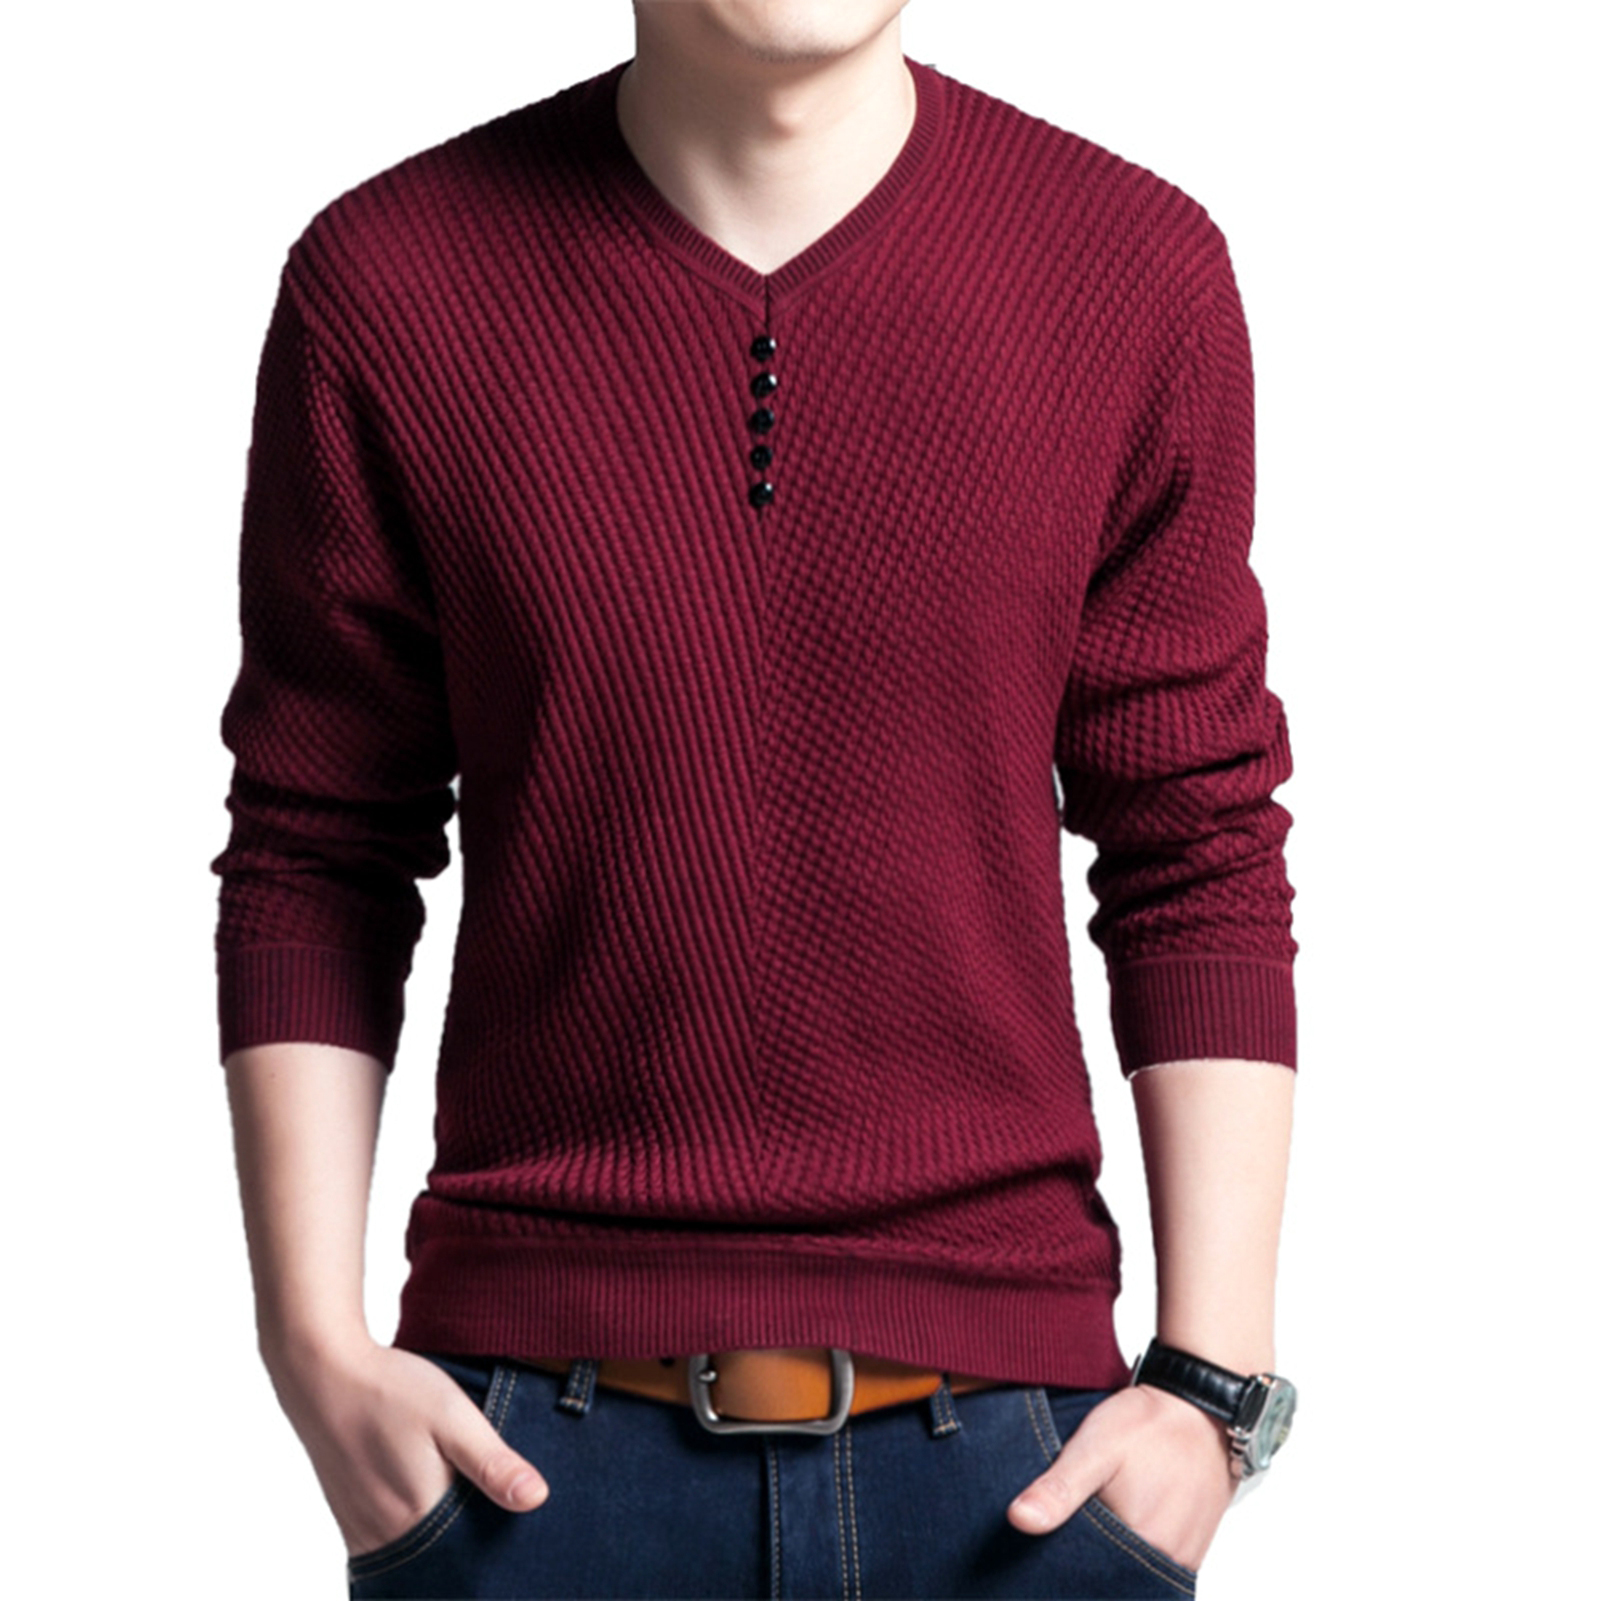 Men Long Sleeve Solid Color Buttons Decor Knitwear Plus Size Bottoming Sweater Men's Knitted Sweaters Pullover Men Knitwear 2020 5